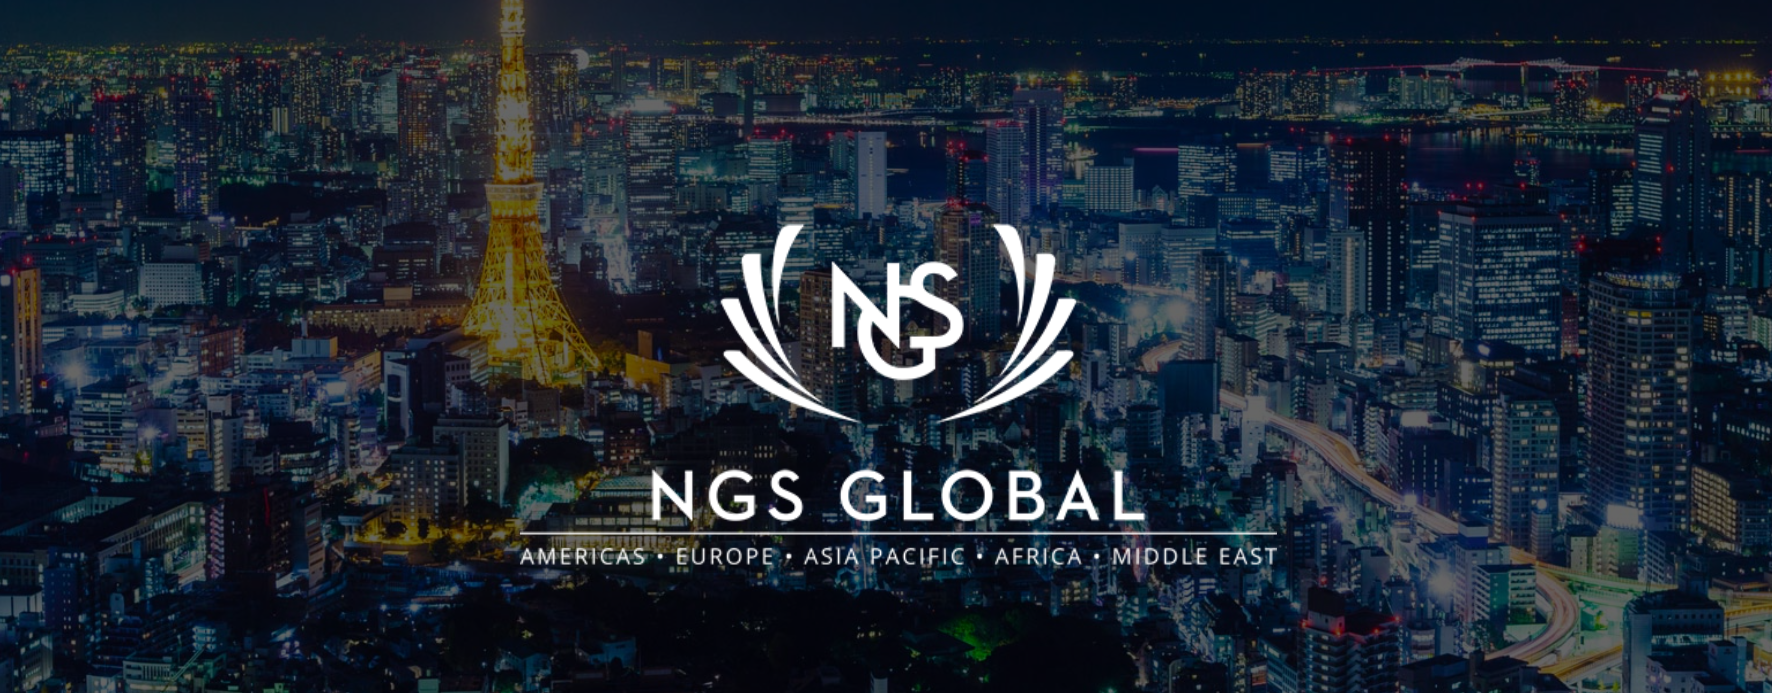 NGS Global India